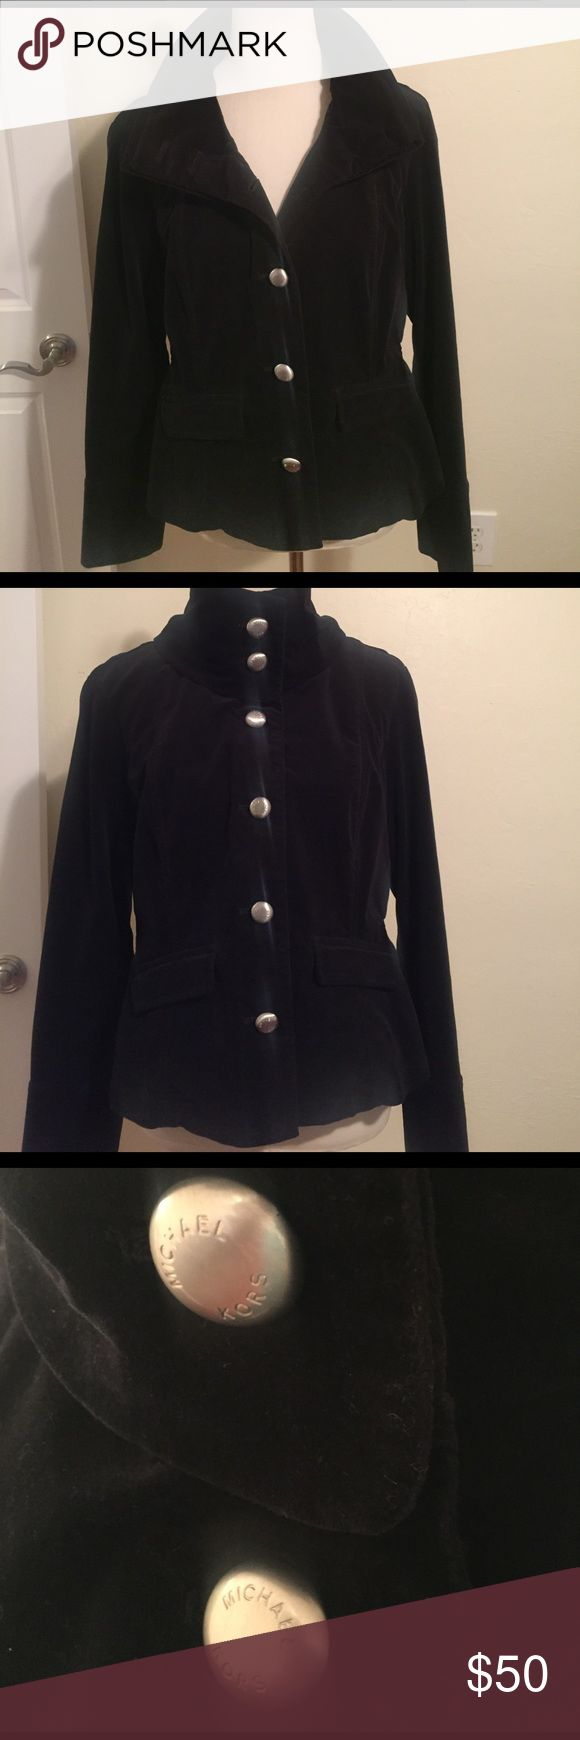 Michael Kors velvet military style coat This is a velvet Michael Kors military style coat. Large silver buttons with the Michael Kors logo on the front, back, and sleeves. MICHAEL Michael Kors Jackets & Coats Pea Coats